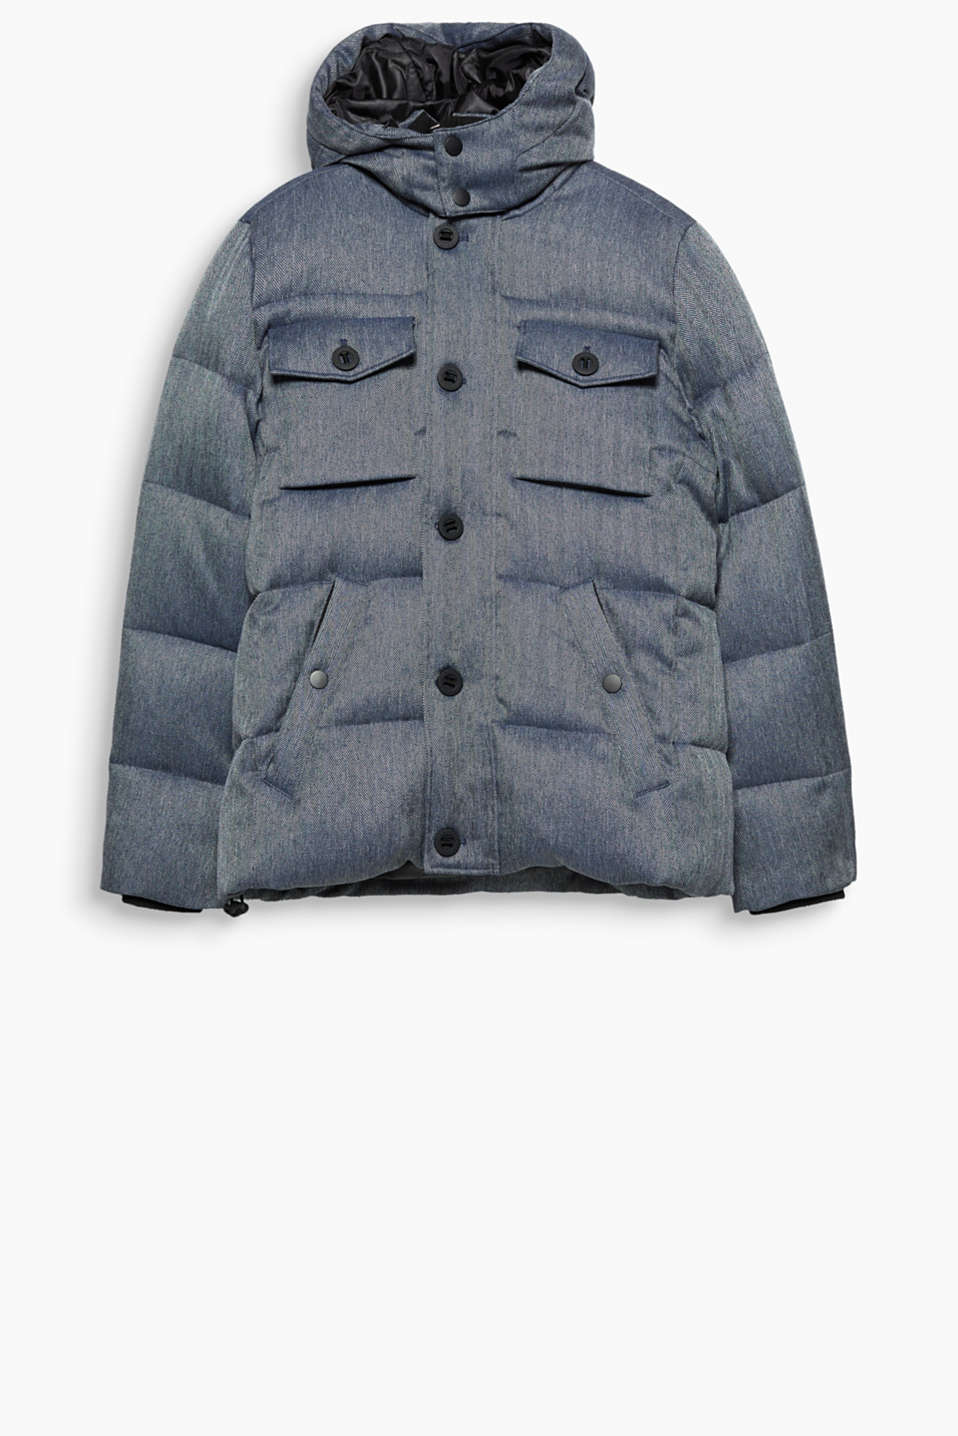 A modern outerwear style: winter jacket with a herringbone pattern and RDS-certified down-feather filling.